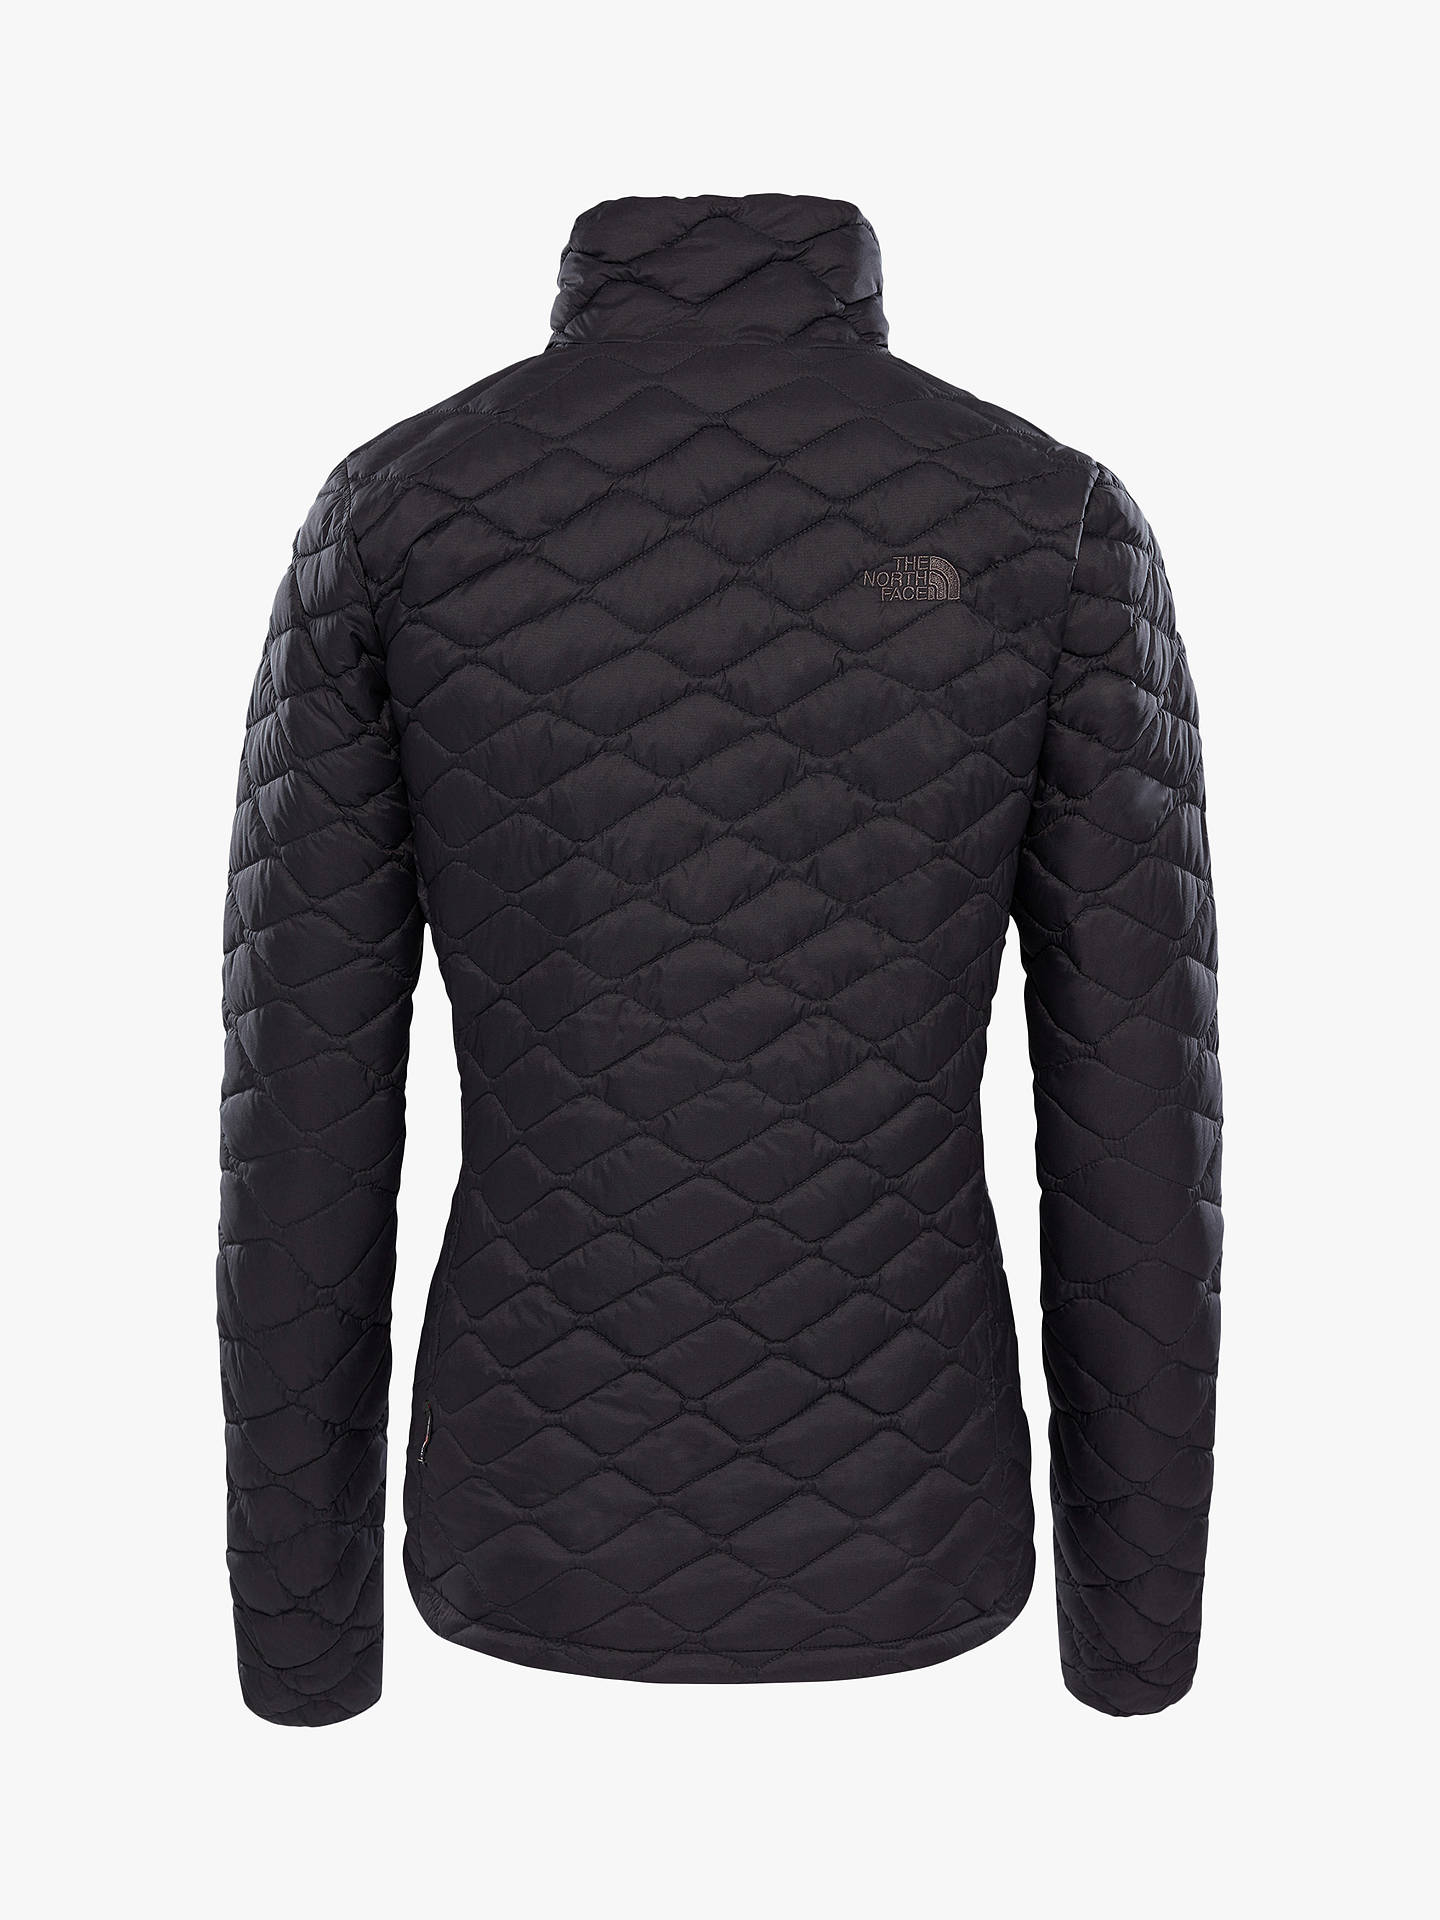 Buy The North Face Thermoball Quilted Full-Zip Women's Insulated Jacket, Black, S Online at johnlewis.com